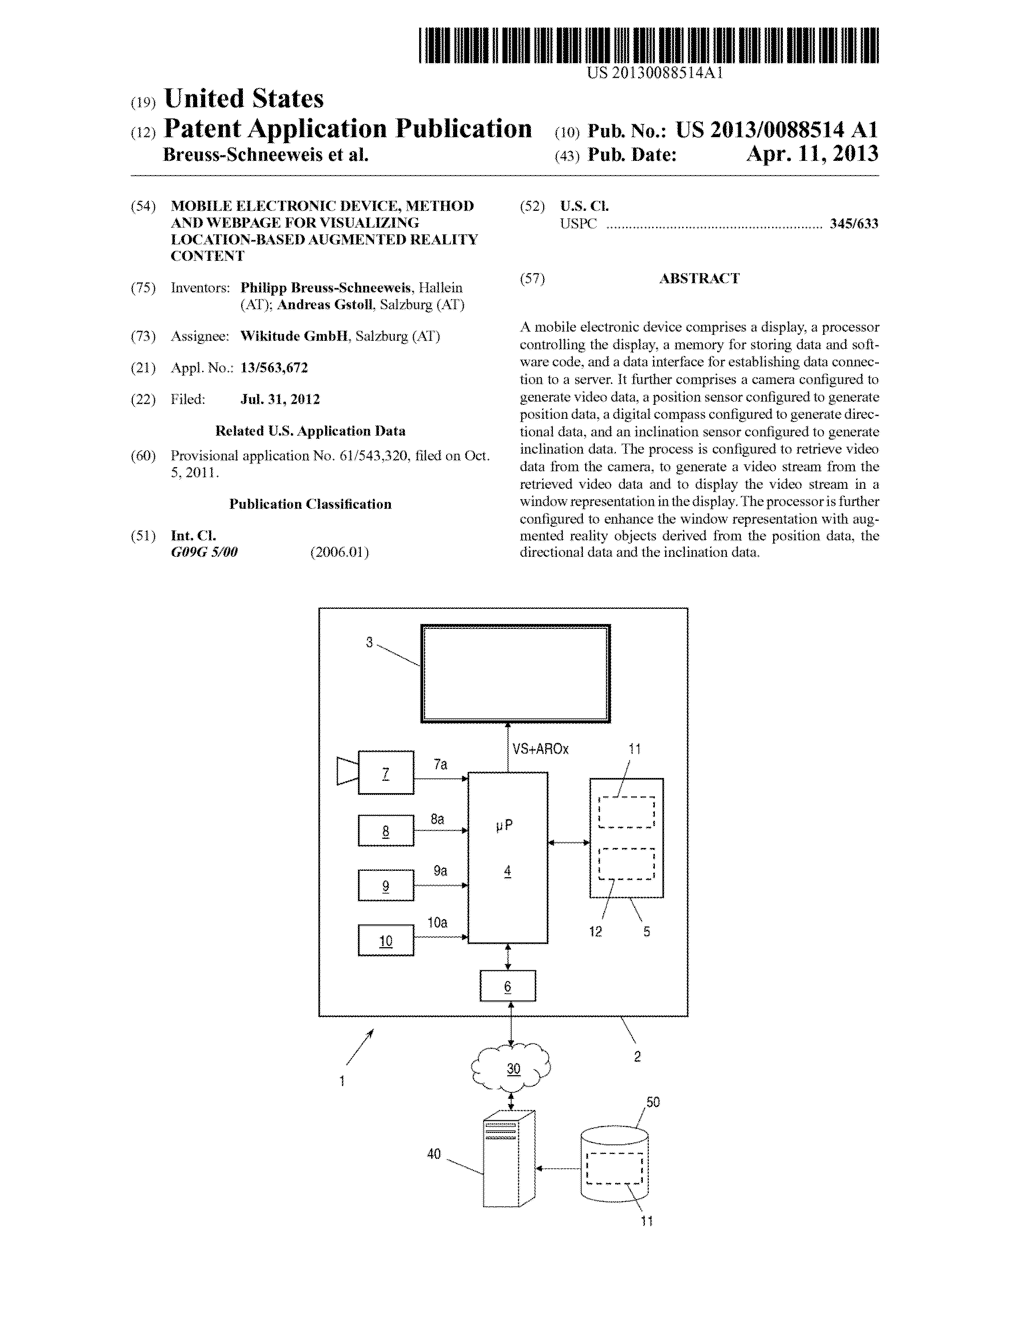 MOBILE ELECTRONIC DEVICE, METHOD AND WEBPAGE FOR VISUALIZING     LOCATION-BASED AUGMENTED REALITY CONTENT - diagram, schematic, and image 01